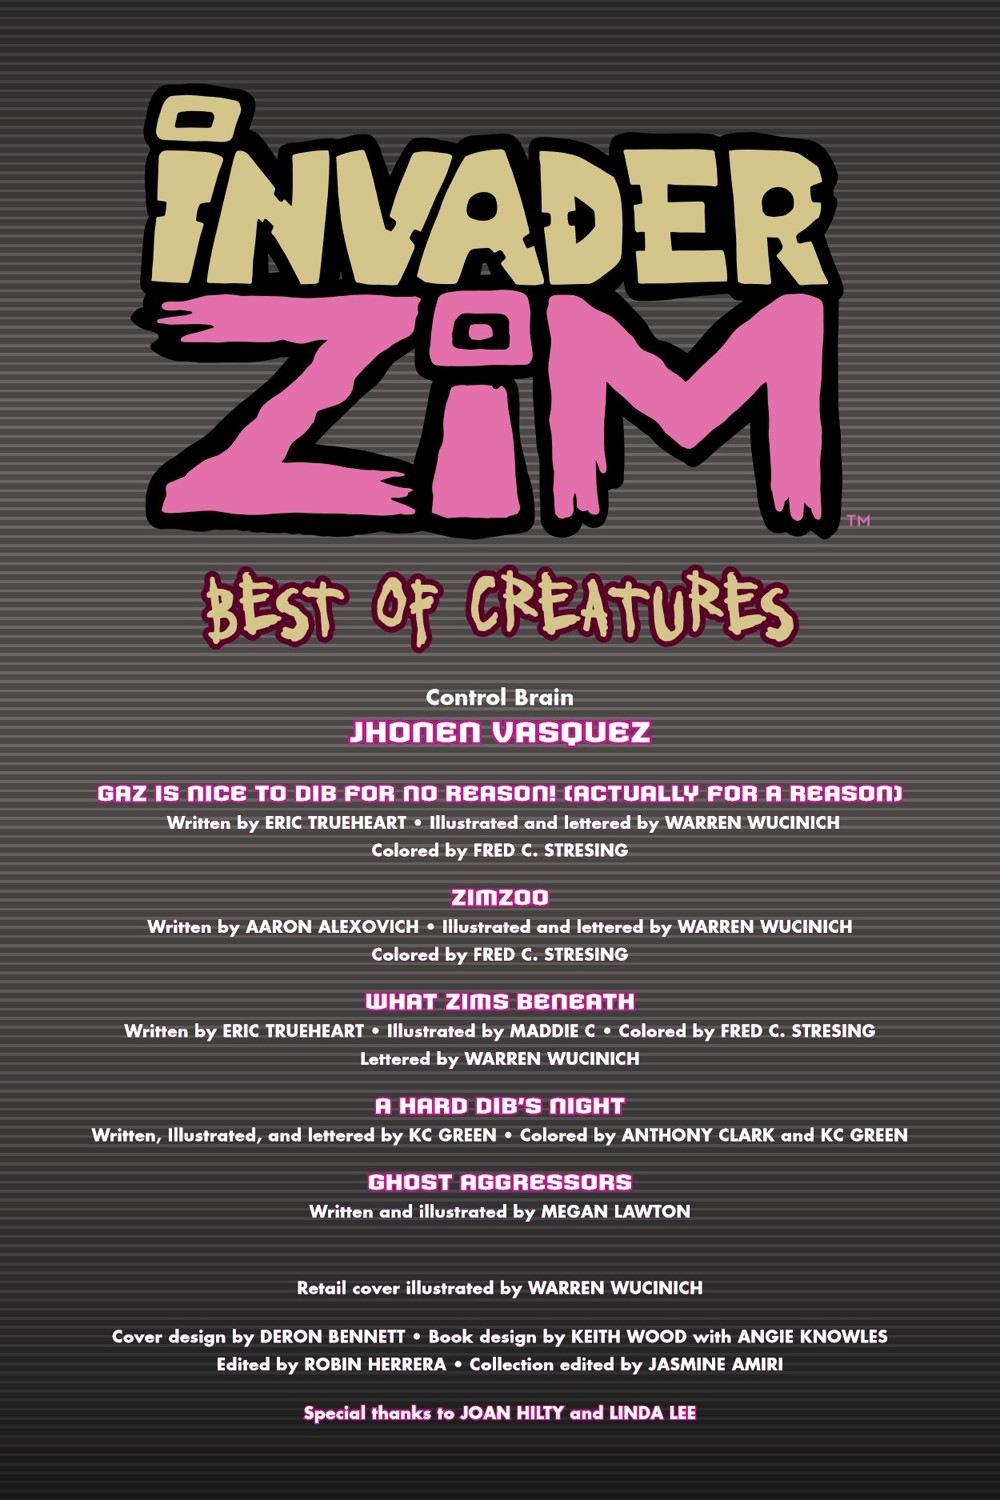 INVADERZIM-BEST-OF-CREATURES-REFERENCE-004 ComicList Previews: INVADER ZIM BEST OF CREATURES VOLUME 1 TP